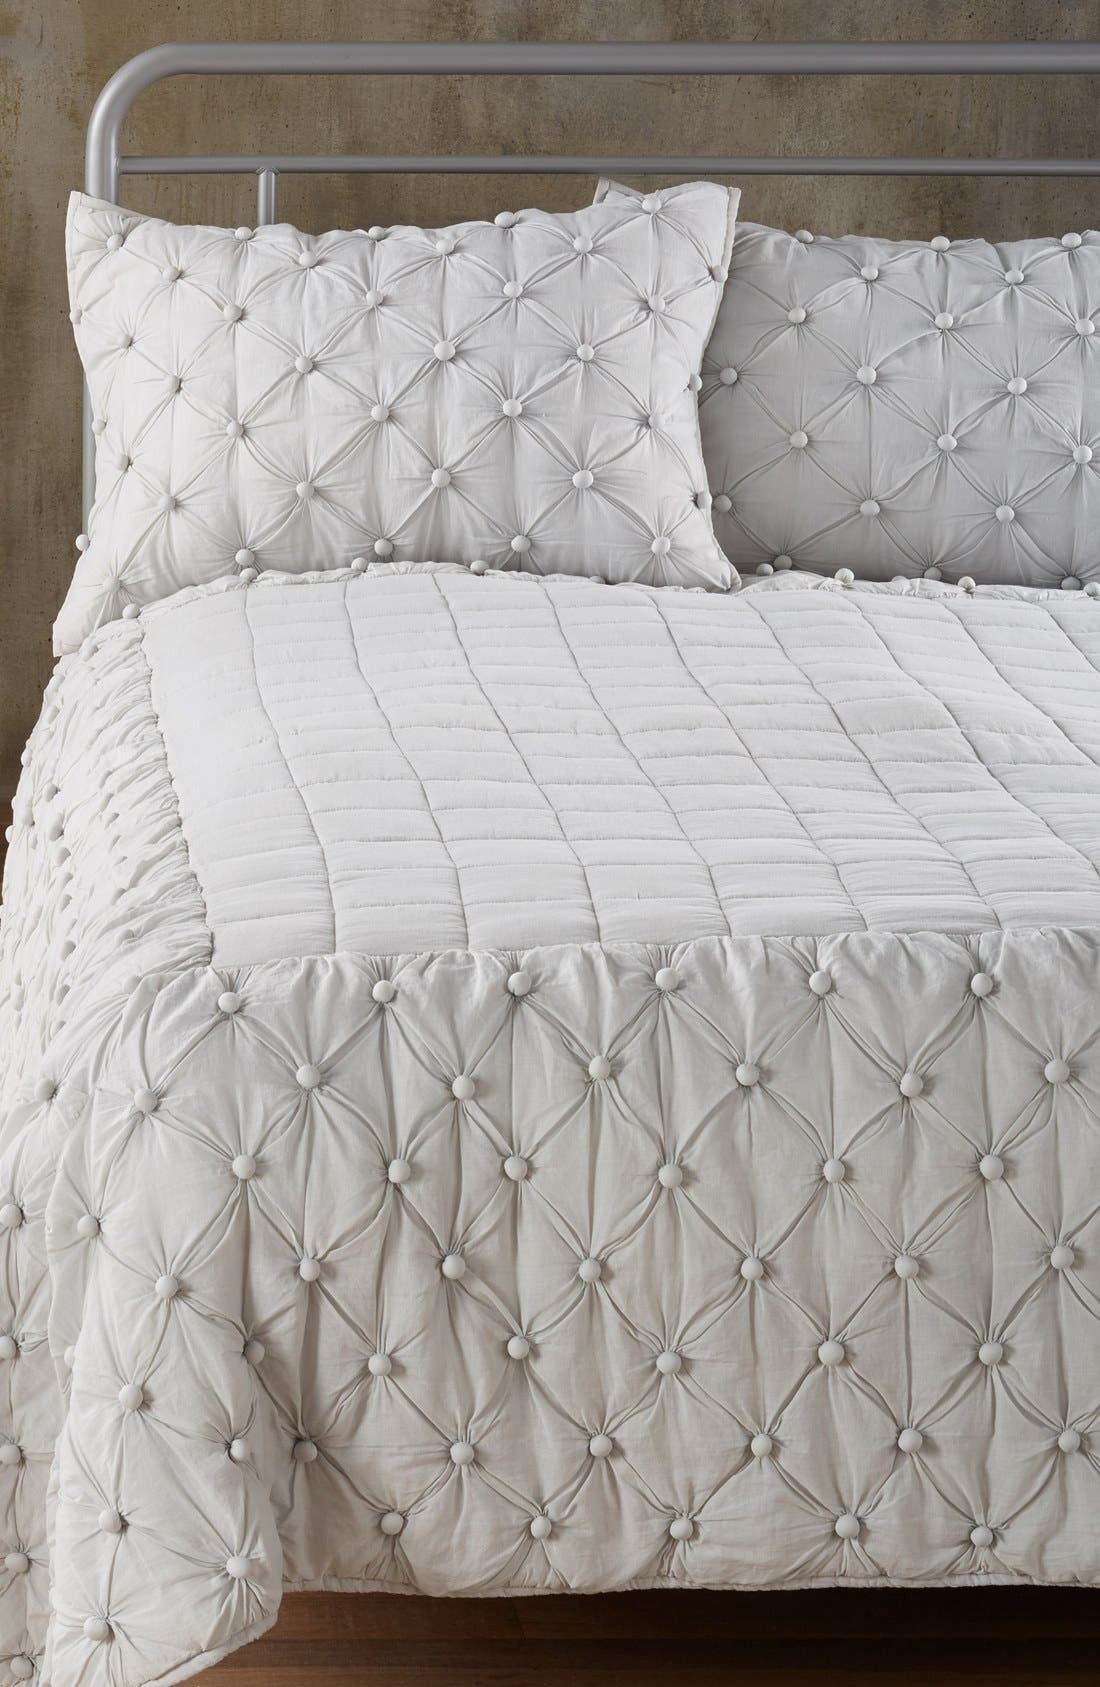 Chelsea Comforter,                             Main thumbnail 1, color,                             021